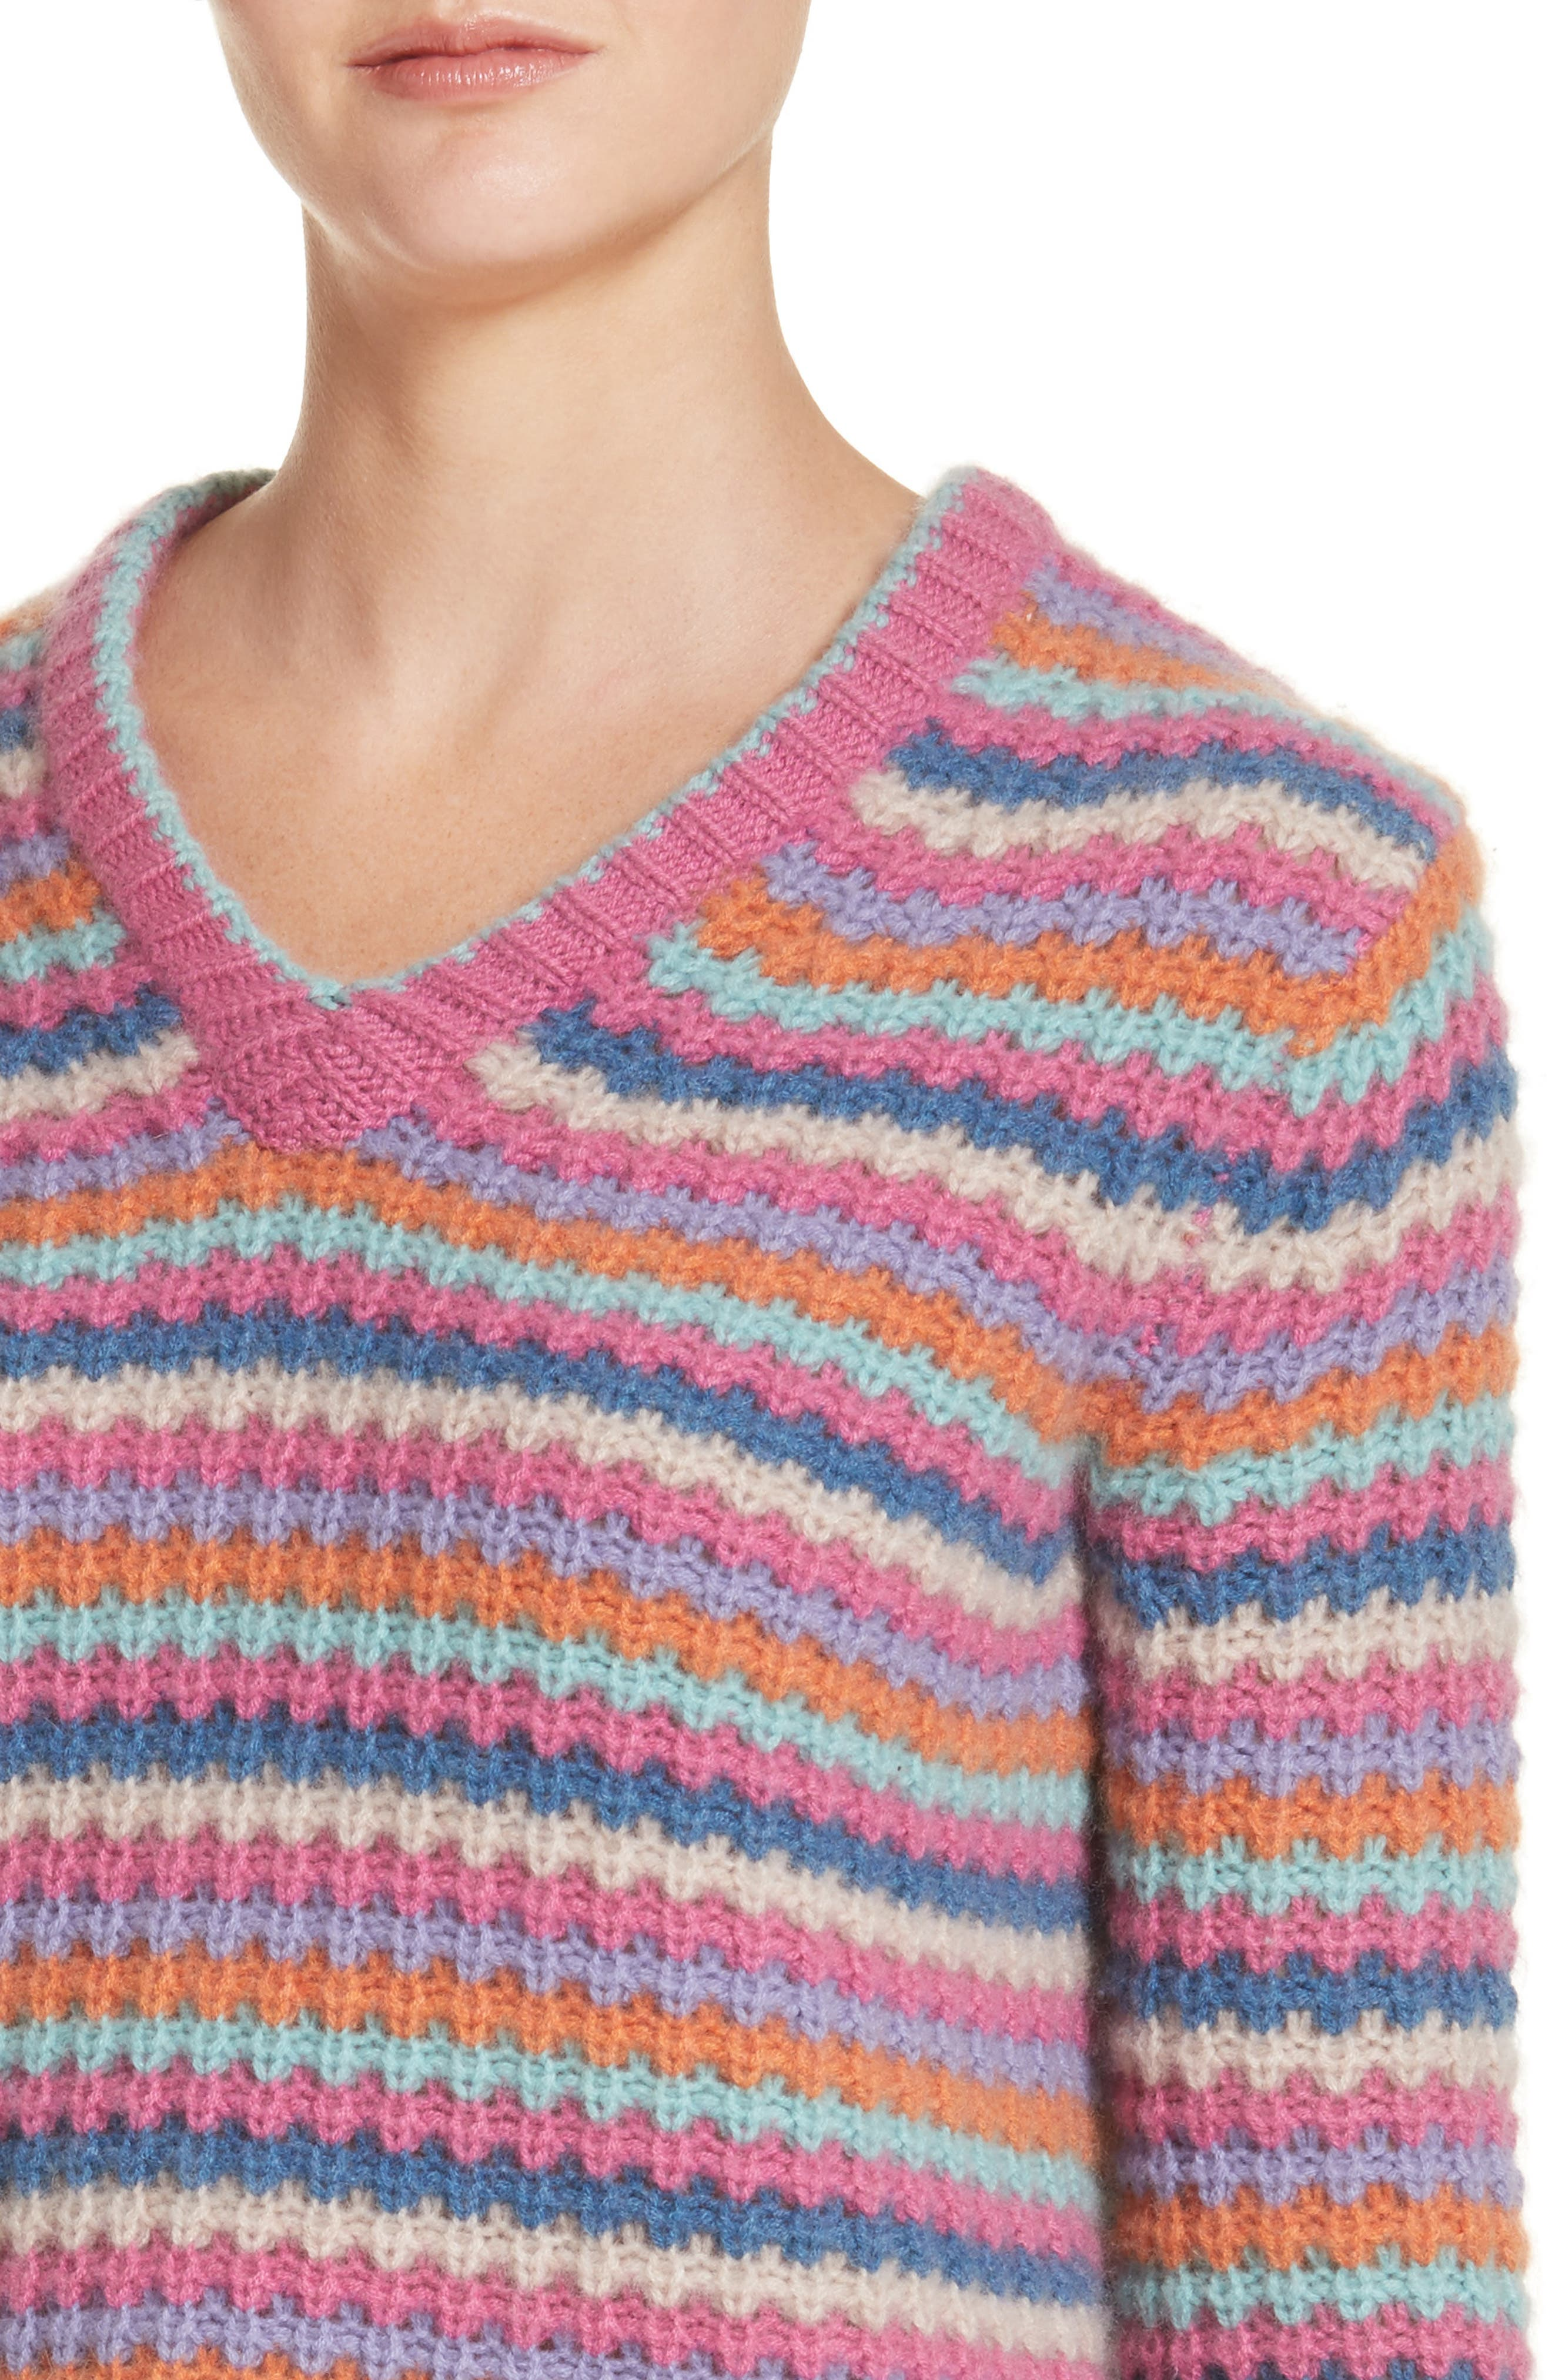 Stripe Cashmere Sweater,                             Alternate thumbnail 4, color,                             651